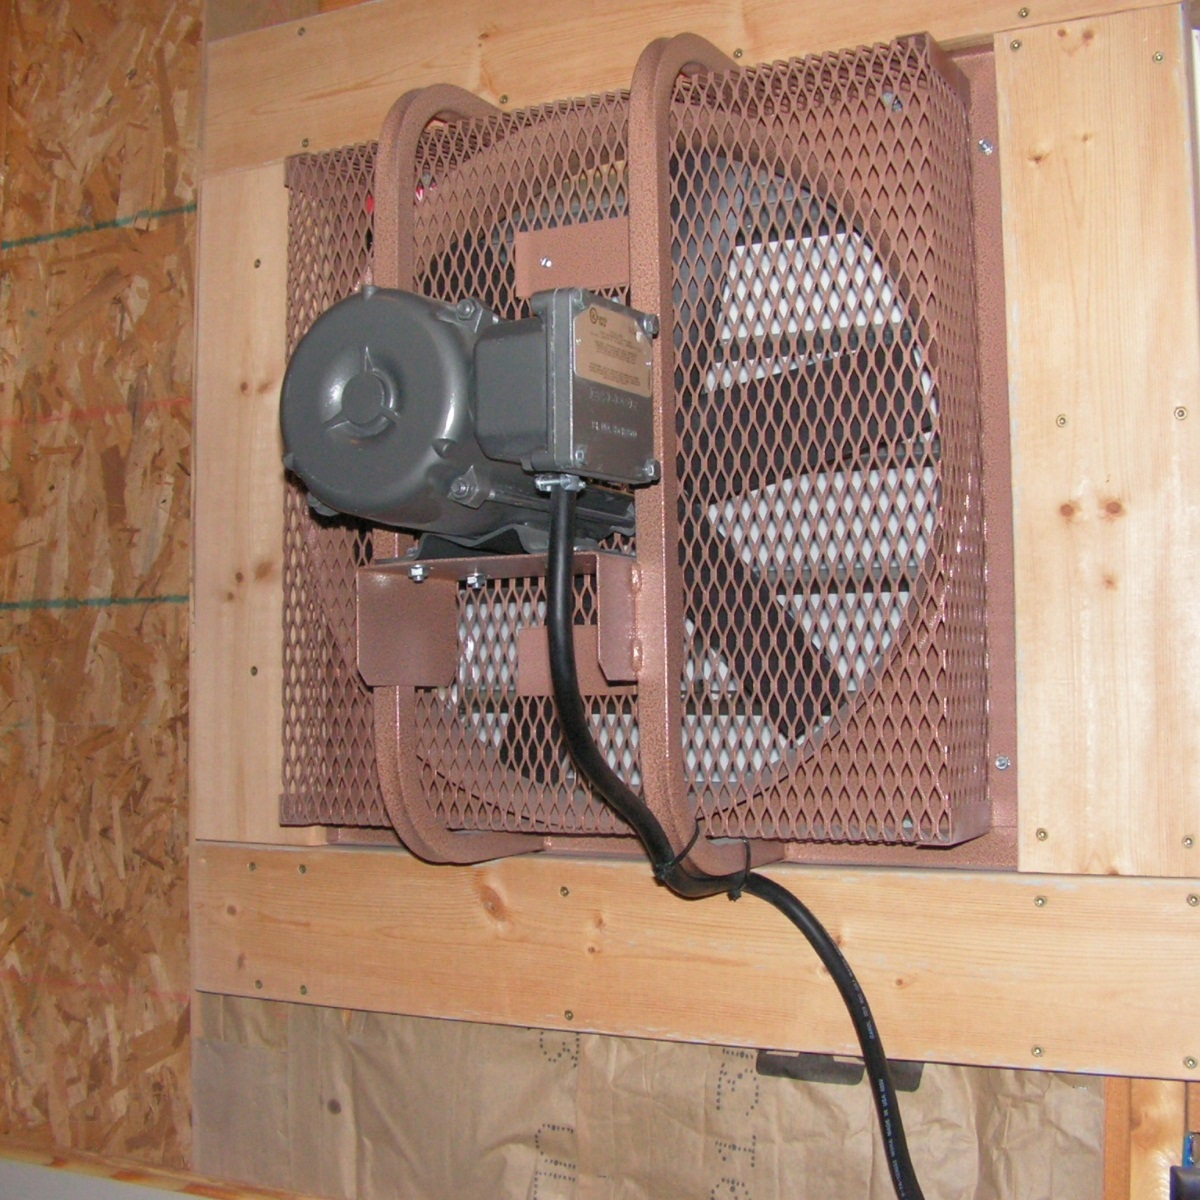 This simple fan can pull CO2 and other pollutants out of the attached garage.